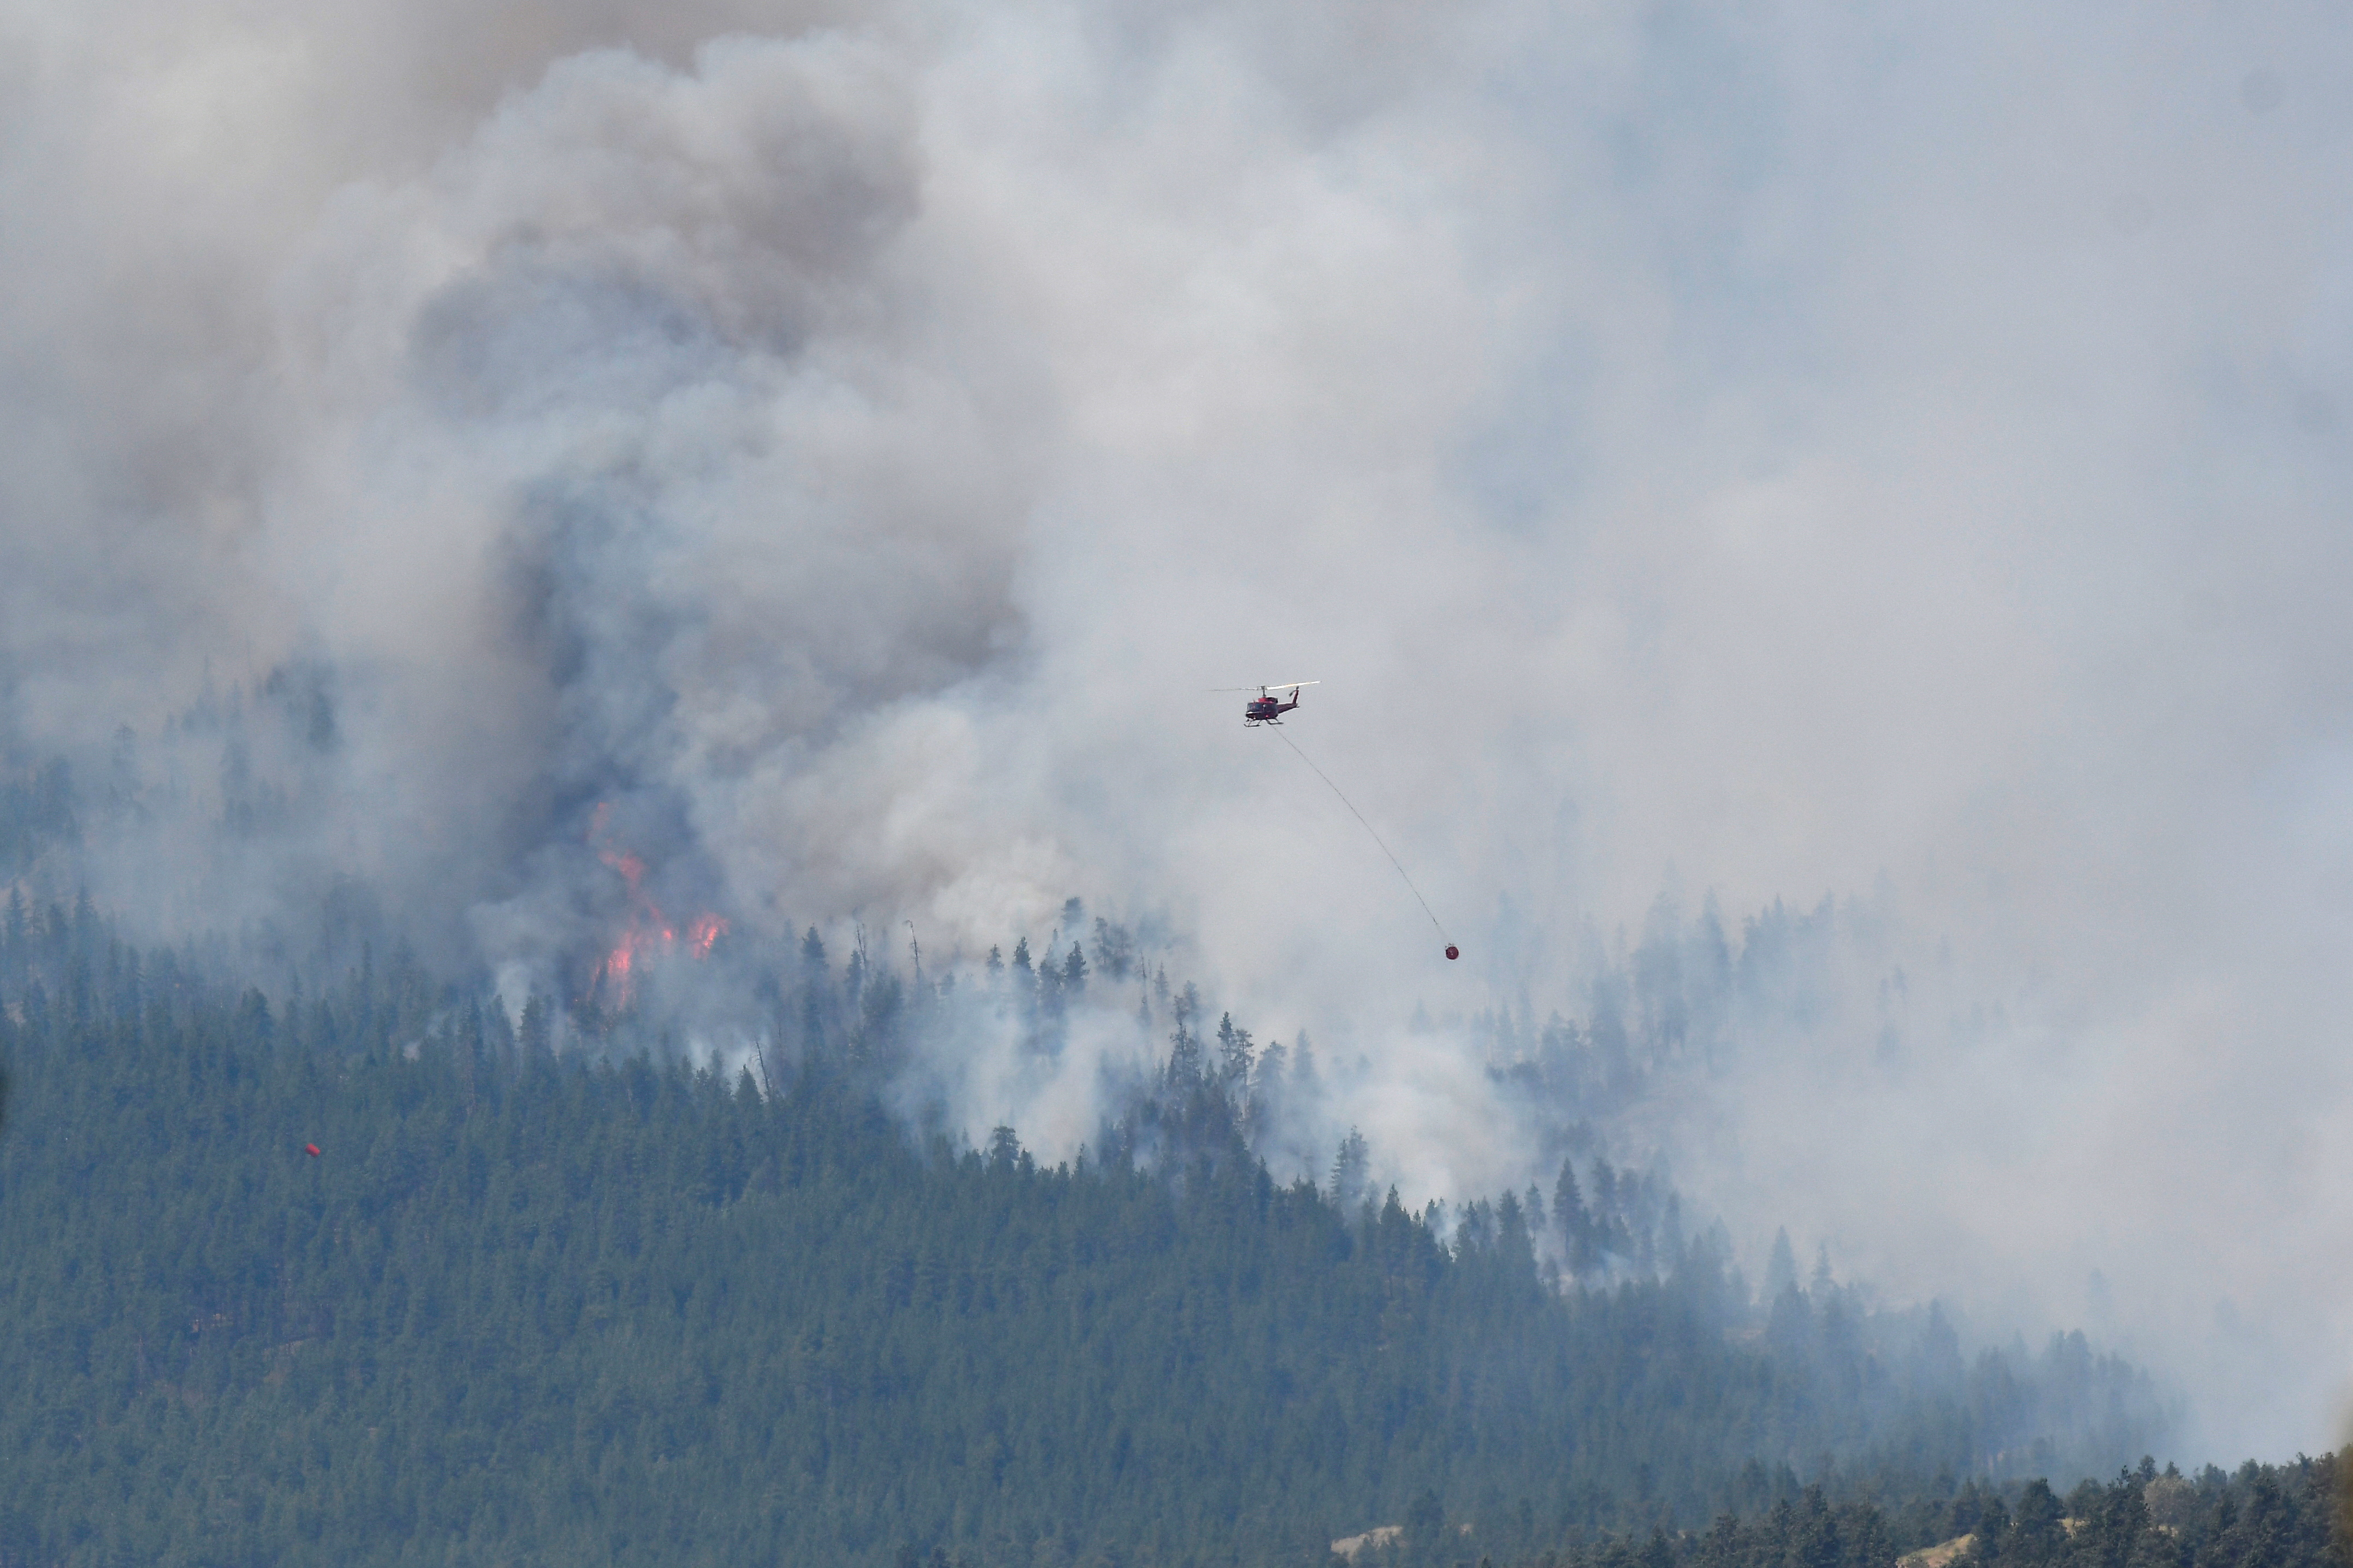 A wildfire burns outside of the town of Lytton, where it raged through and forced everyone to evacuate, in British Columbia, Canada, July 1, 2021.  REUTERS/Jennifer Gauthier